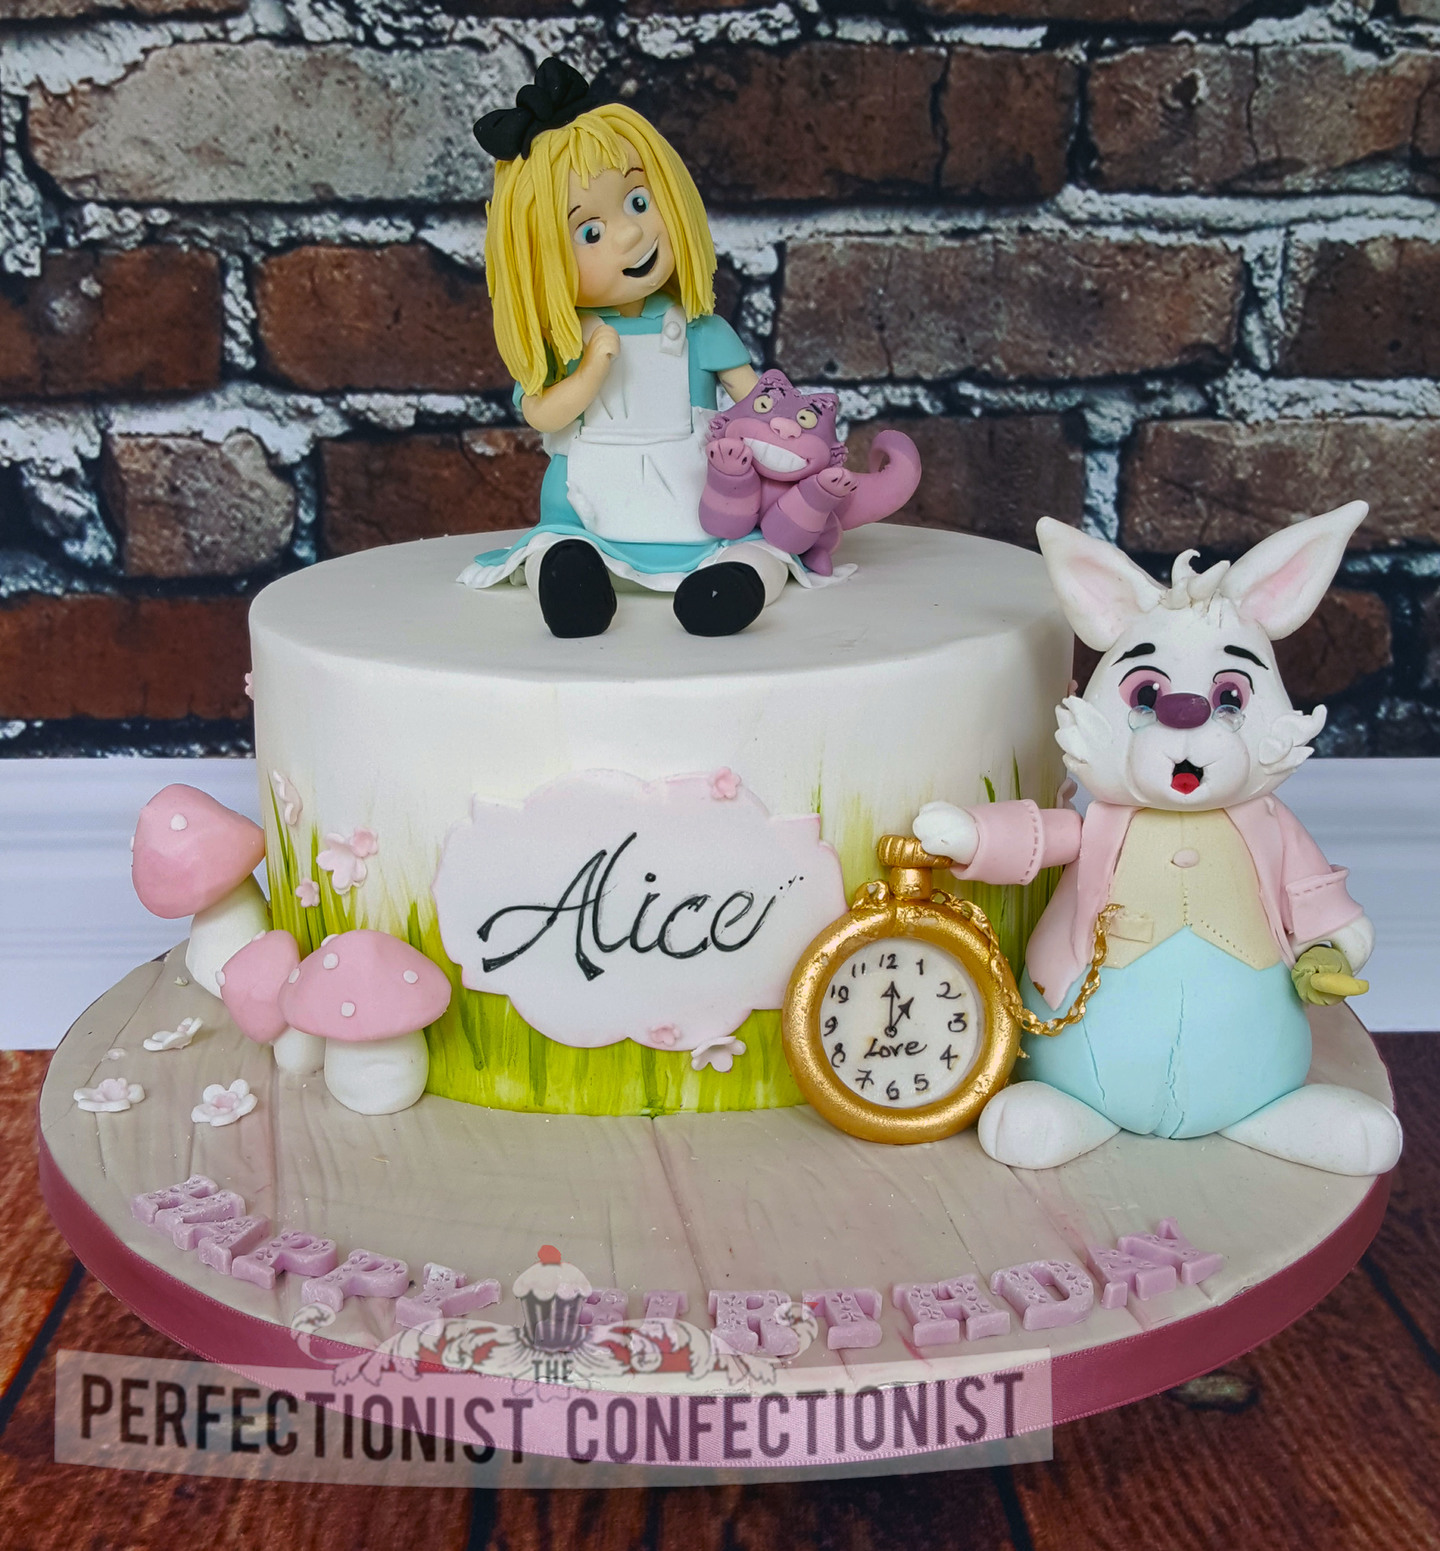 Perfectionist Confectionist Dublin